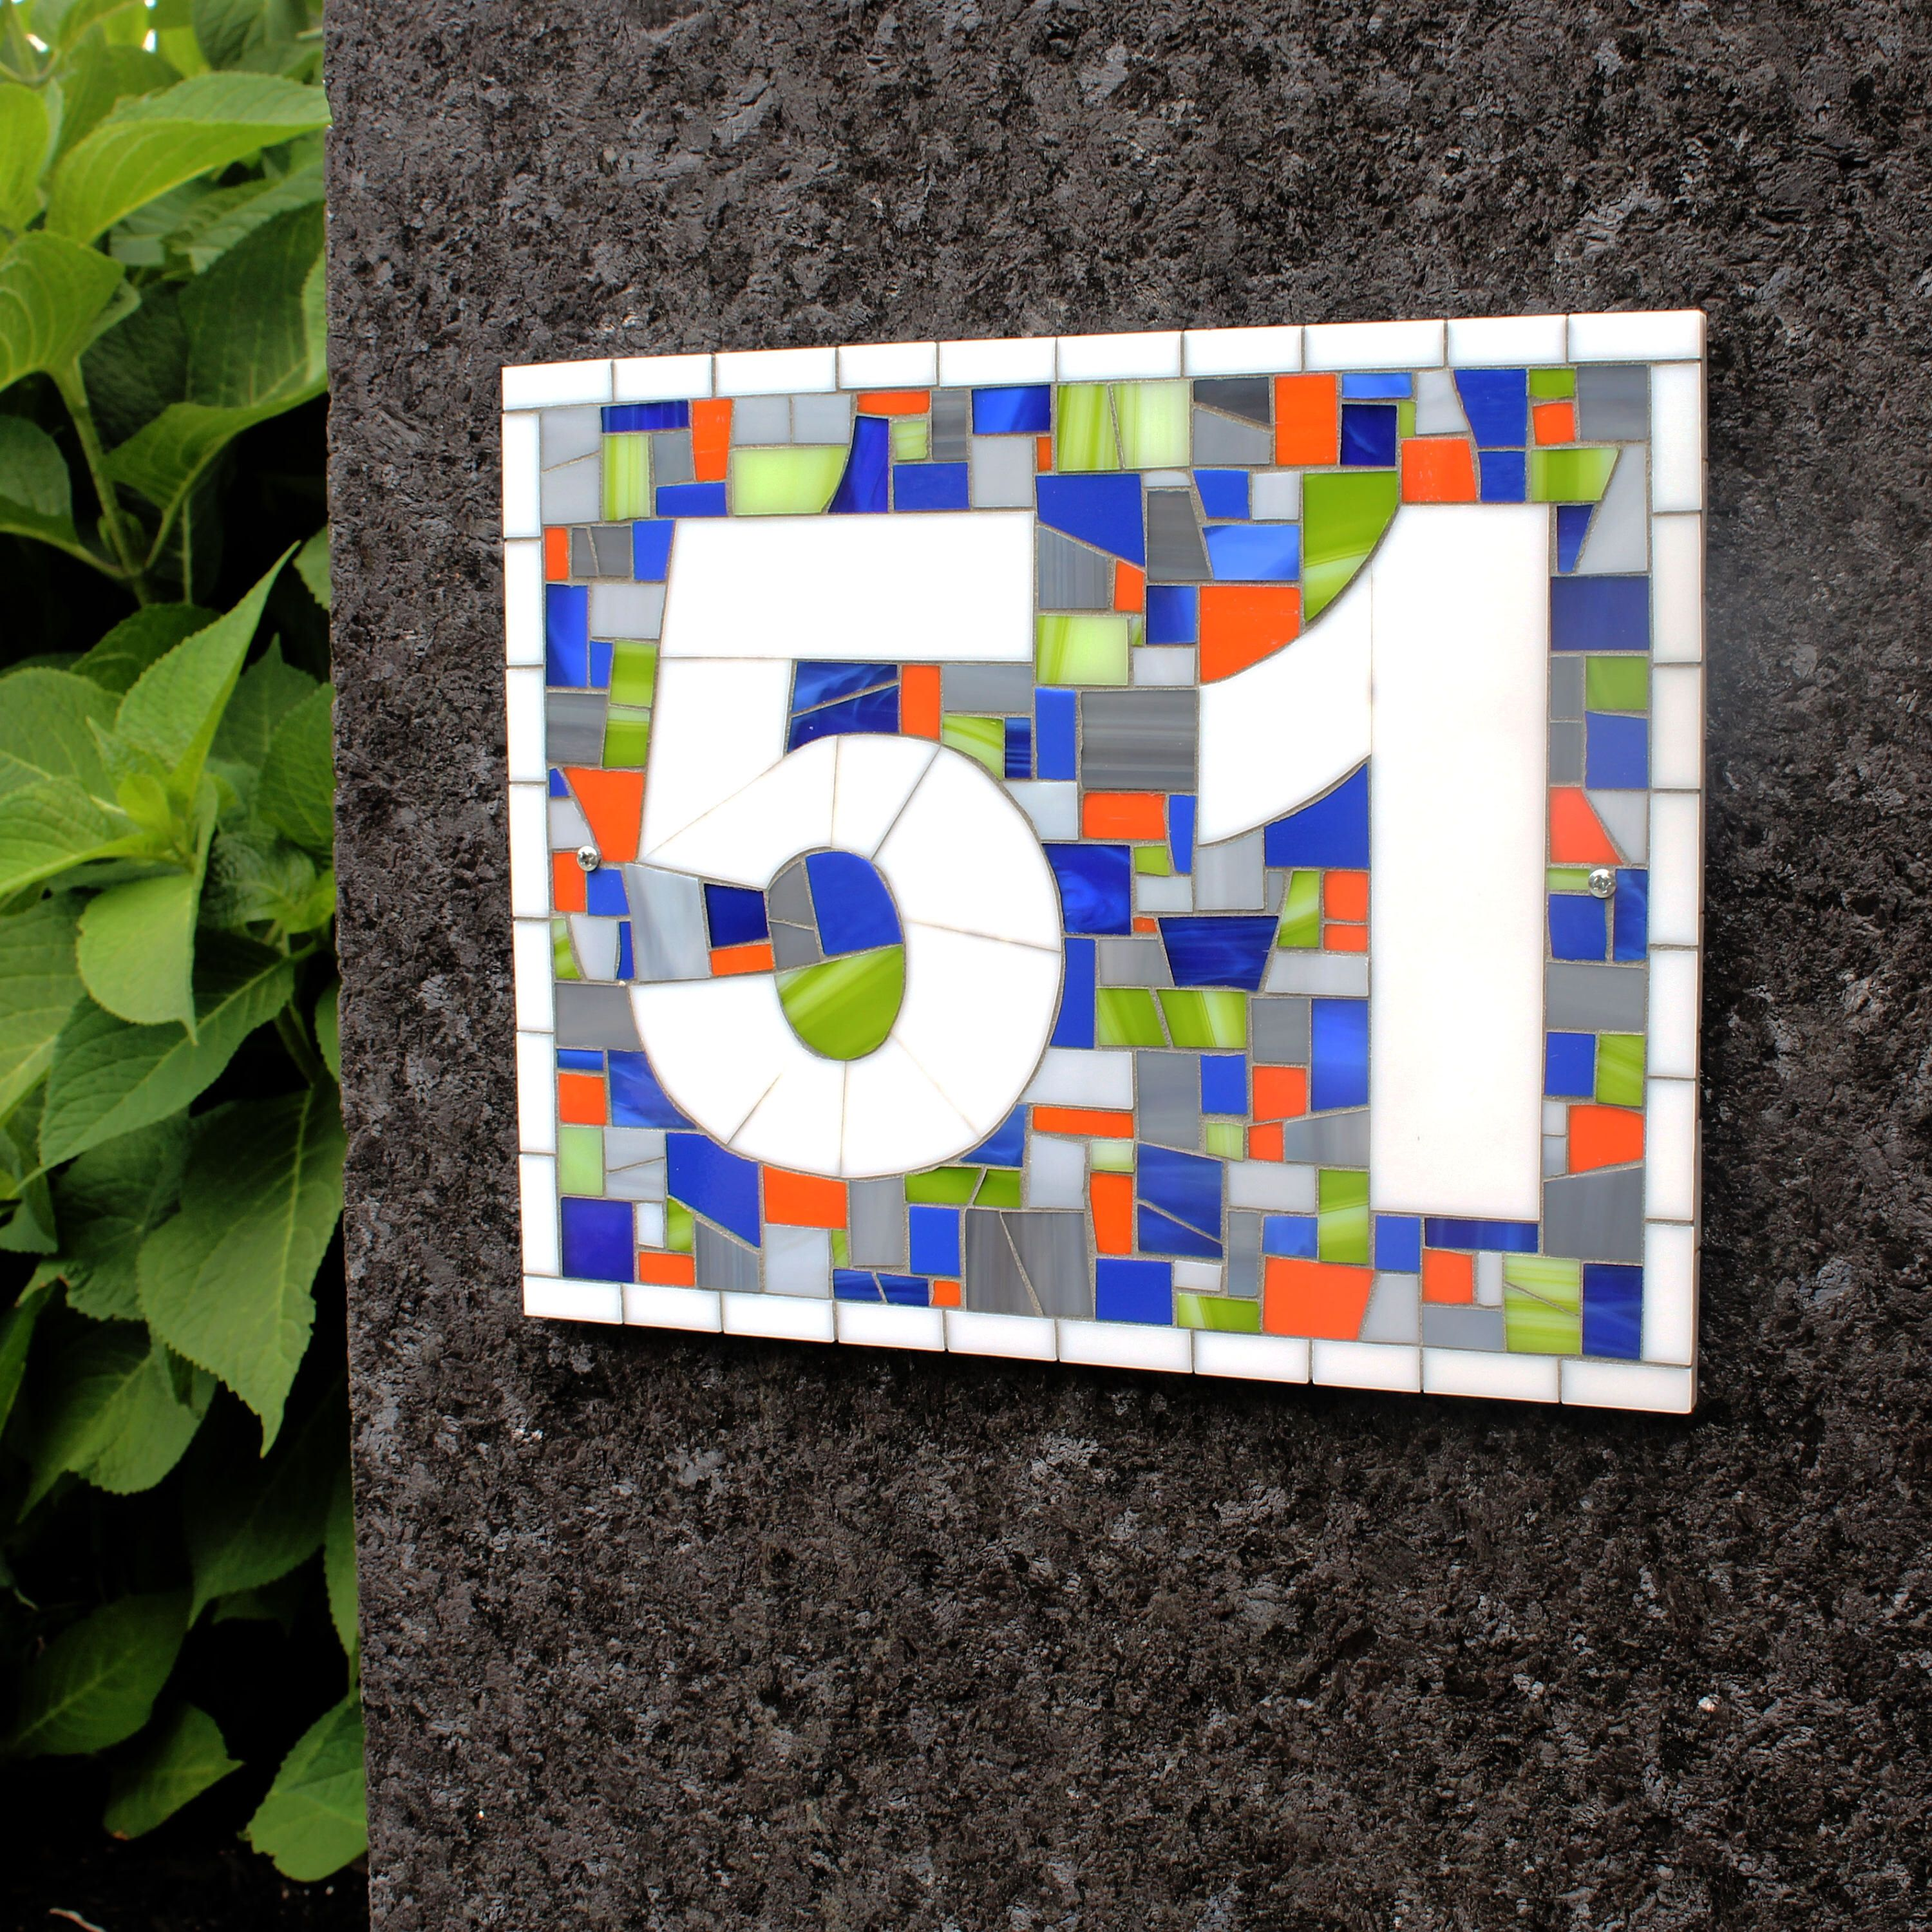 Mosaic house number plaque for blue house by liveinmosaics on etsy mosaic house number plaque for blue house by liveinmosaics on etsy httpswww dailygadgetfo Image collections